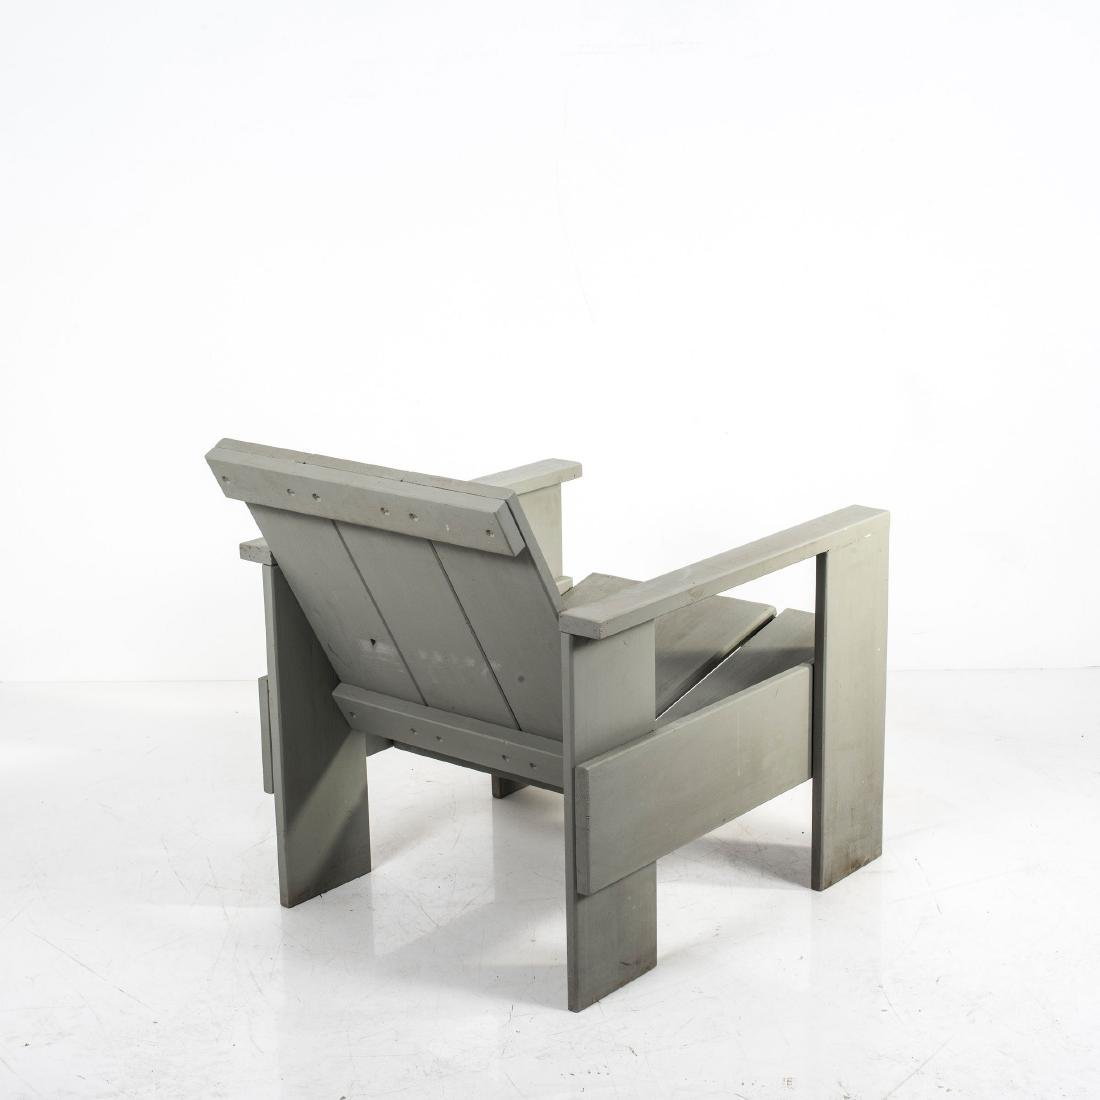 'Crate chair', 1934 - 2